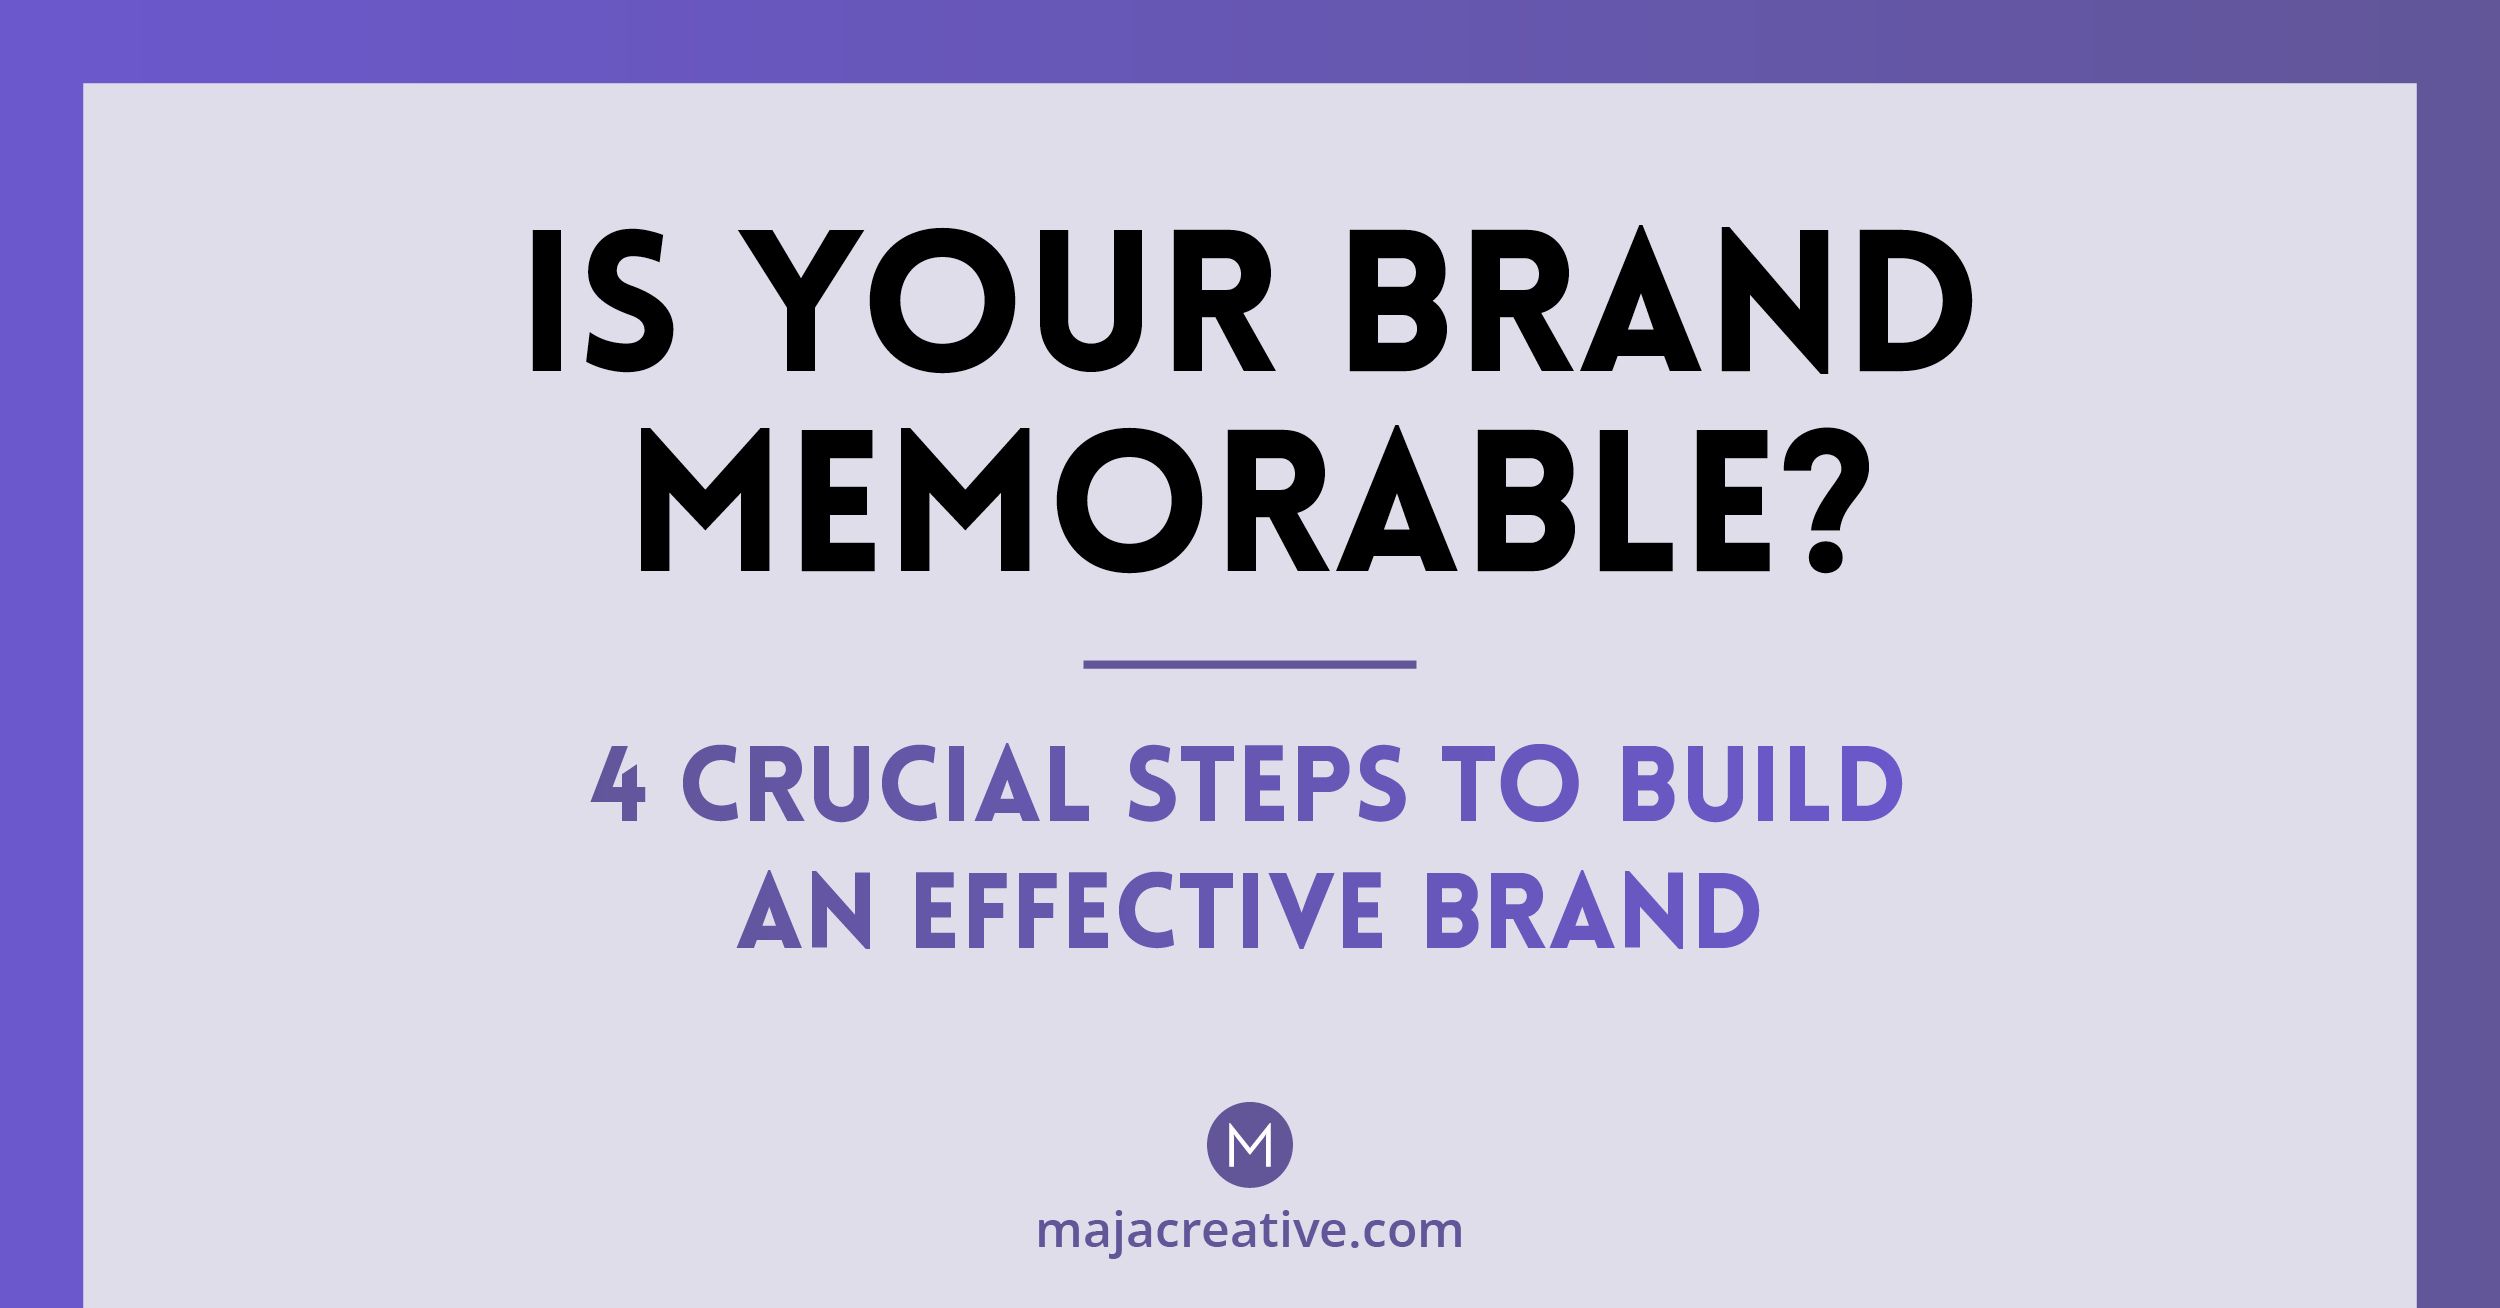 Is your brand memorable? 4 crucial steps to effective branding